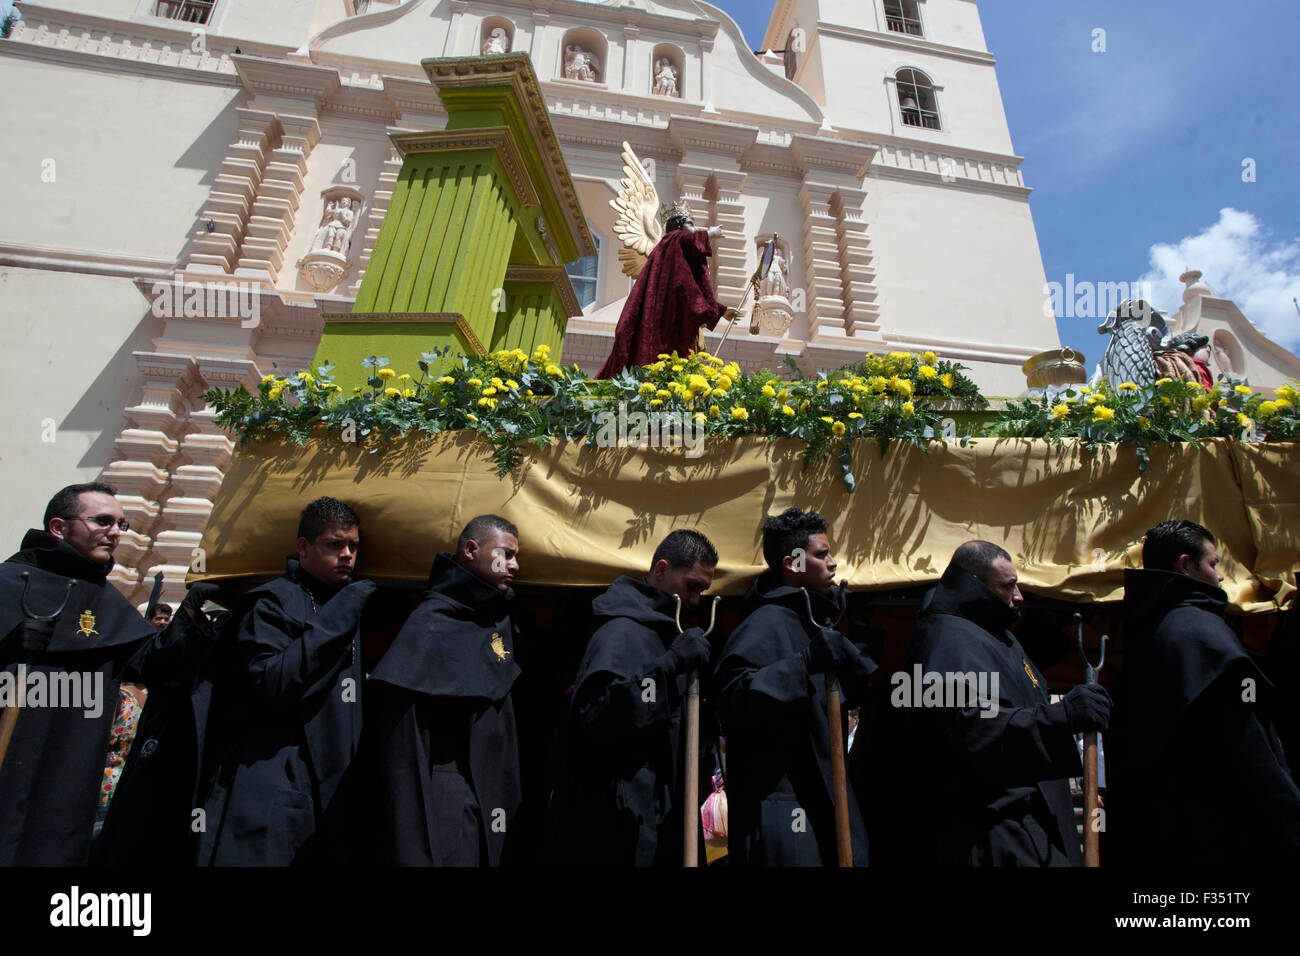 Tegucigalpa, Honduras. 29th Sep, 2015. Residents take part in the presentation of an effigy of St. Michael the Archangel - Stock Image